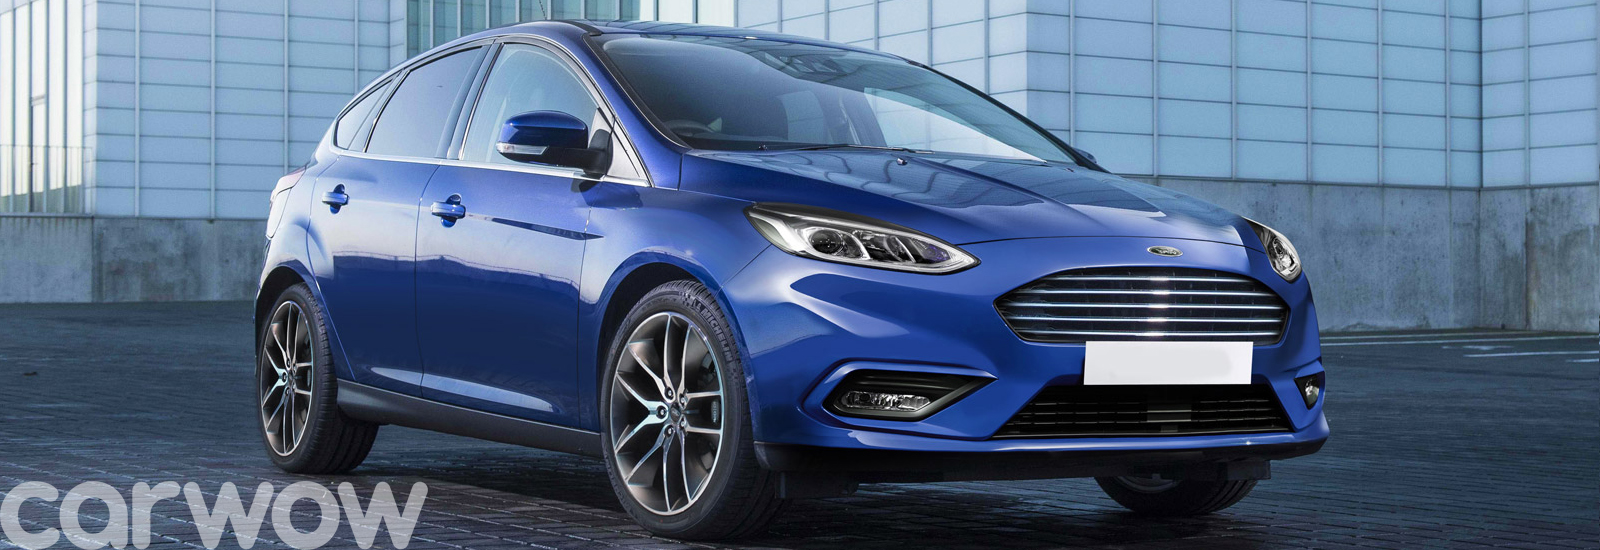 2018 ford new models. simple new this new model will replace the ageing sevenyearold focus helping it  more closely rival vauxhall astra and vw golf our exclusive render previews  intended 2018 ford models